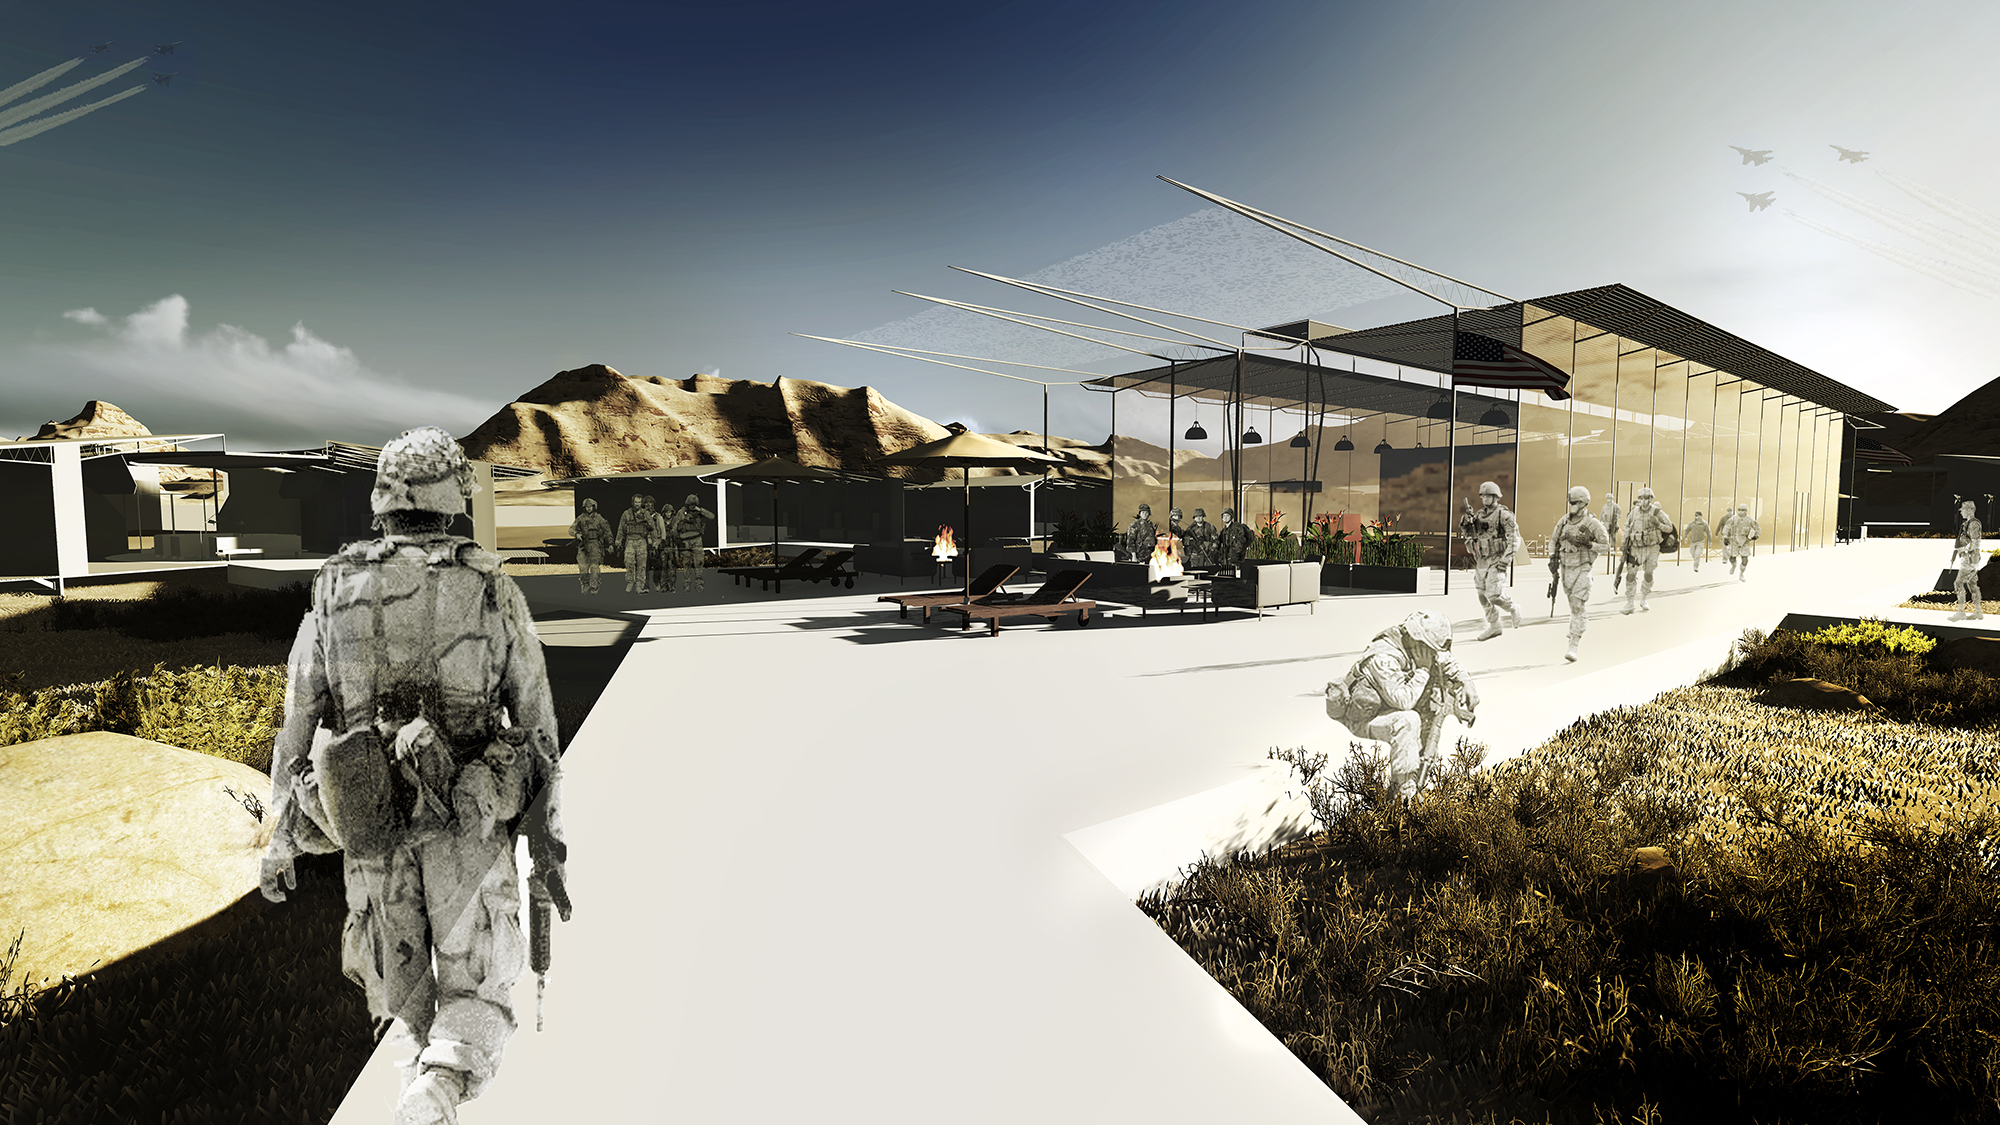 An experimental concept and proposal for a military combat outpost located in Delaram, Afghanistan